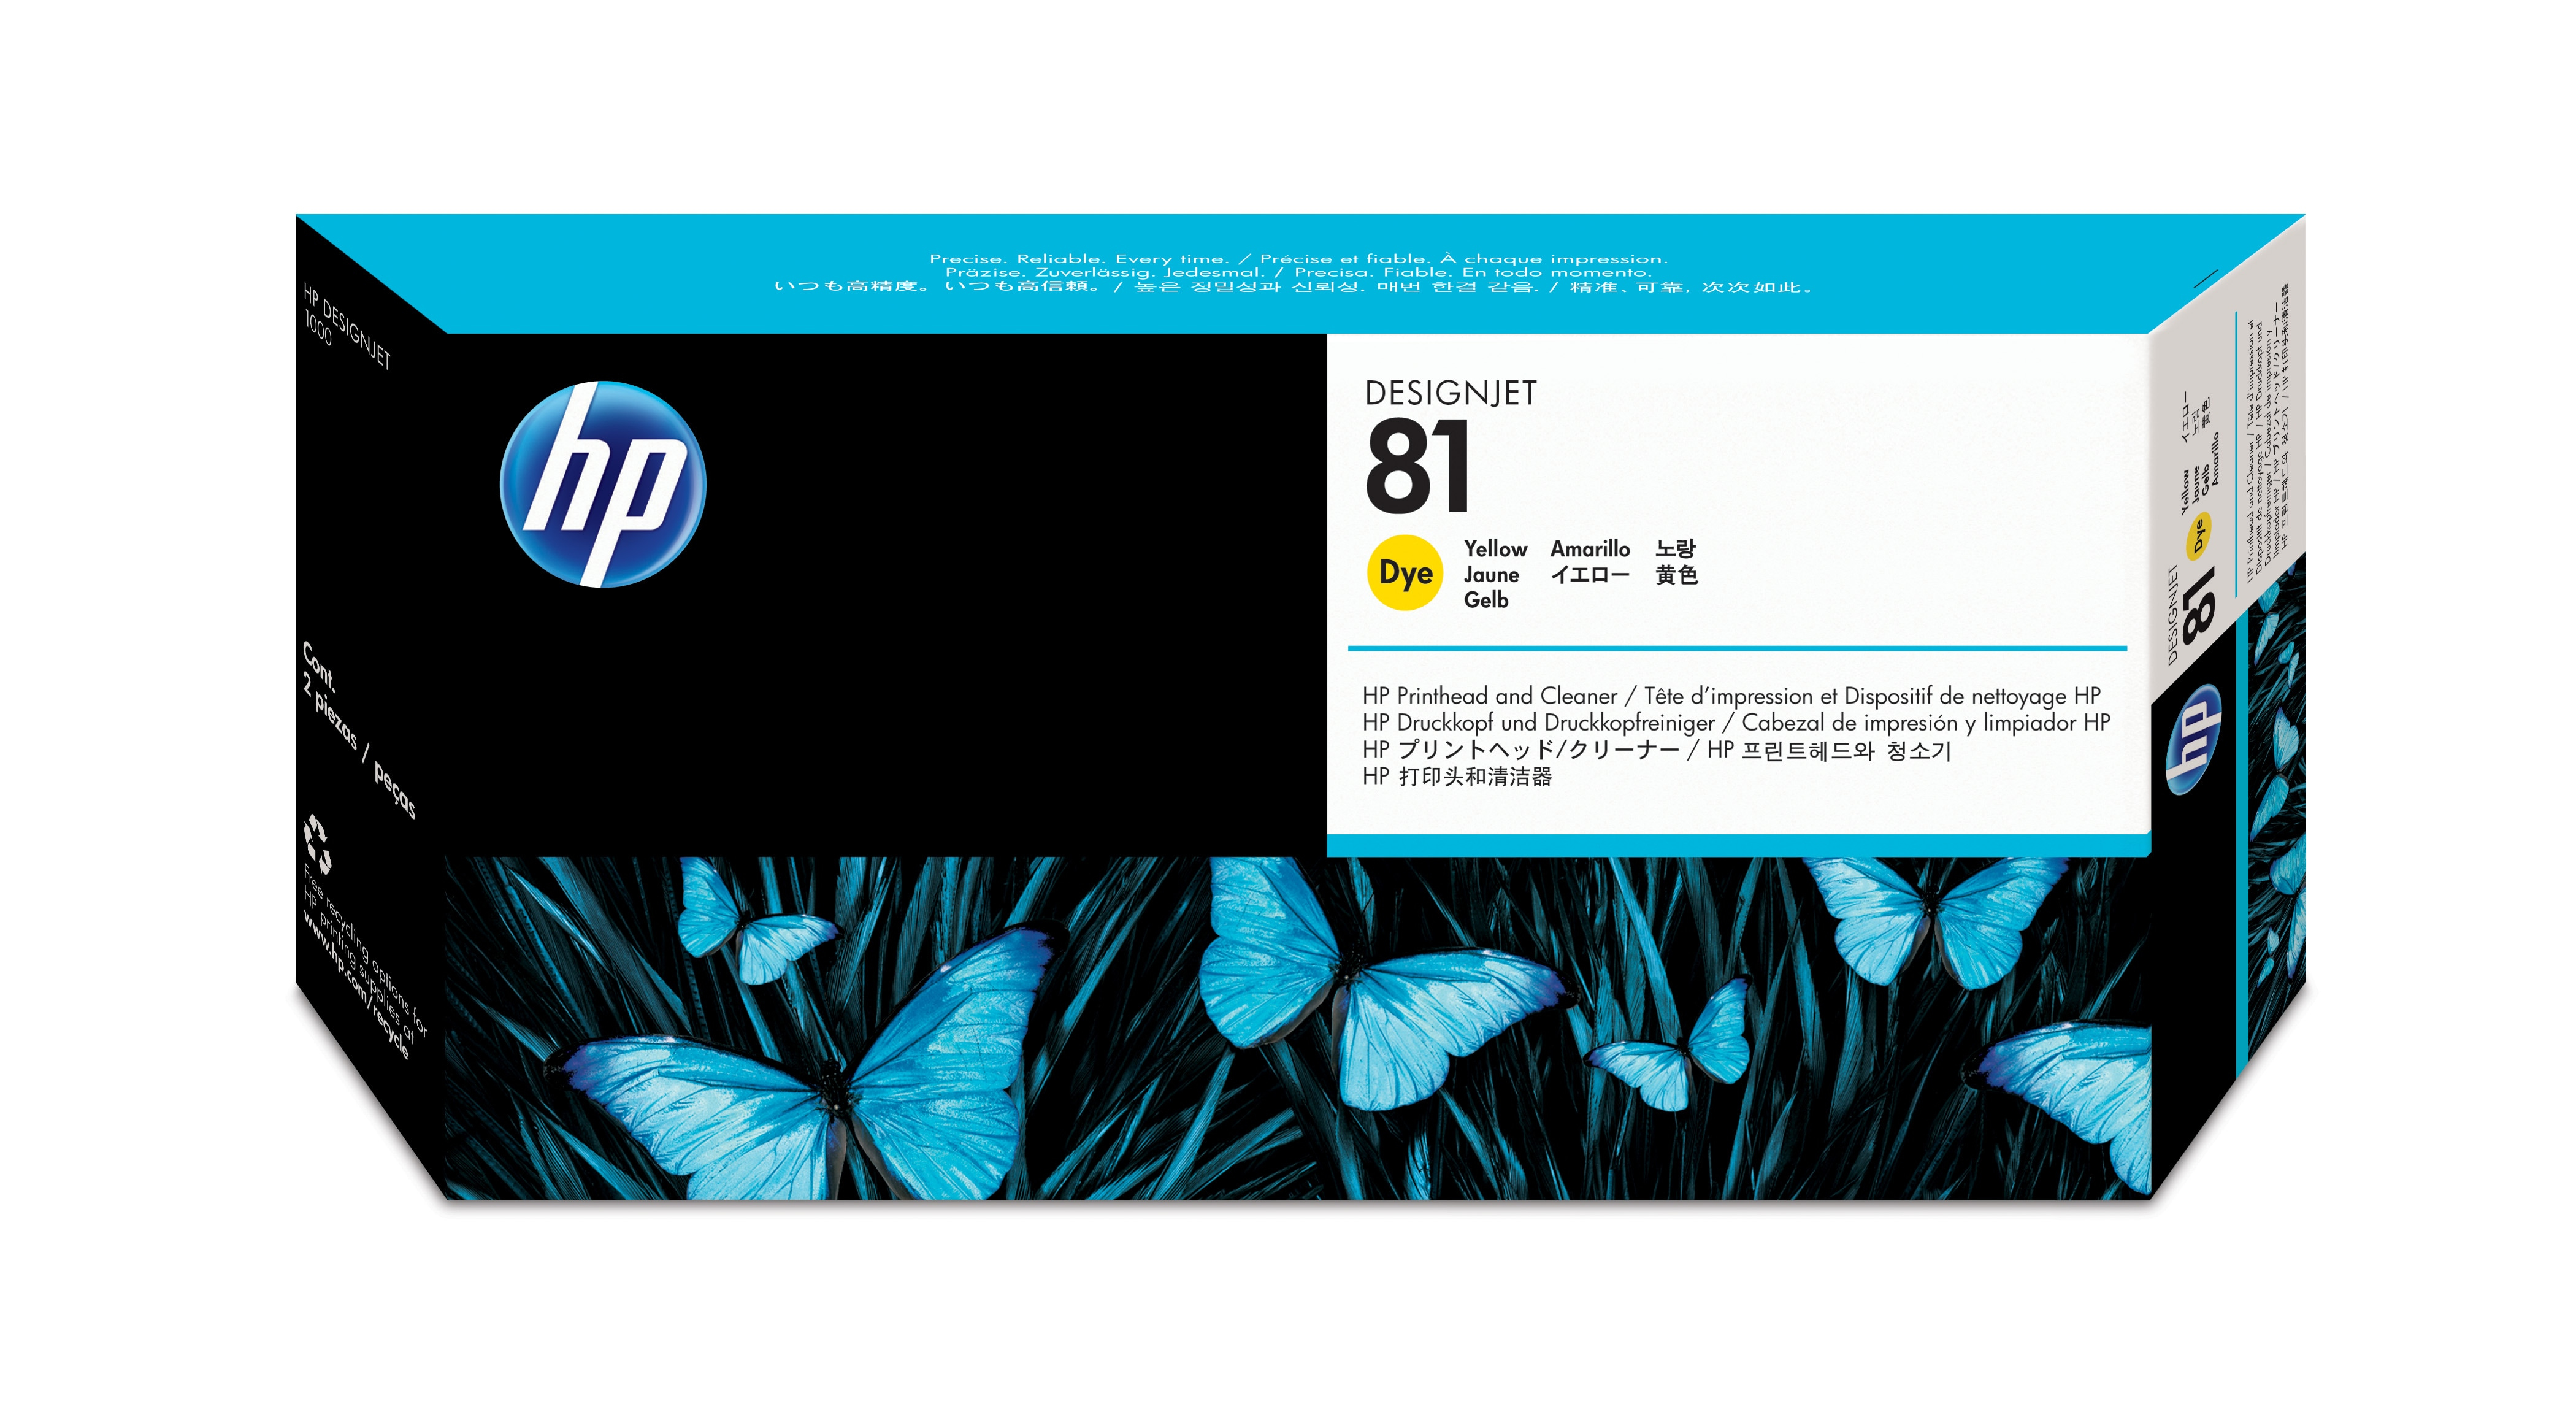 C4953a HP No. 81 Dye Ink Printhead And Cleaner - Yellow